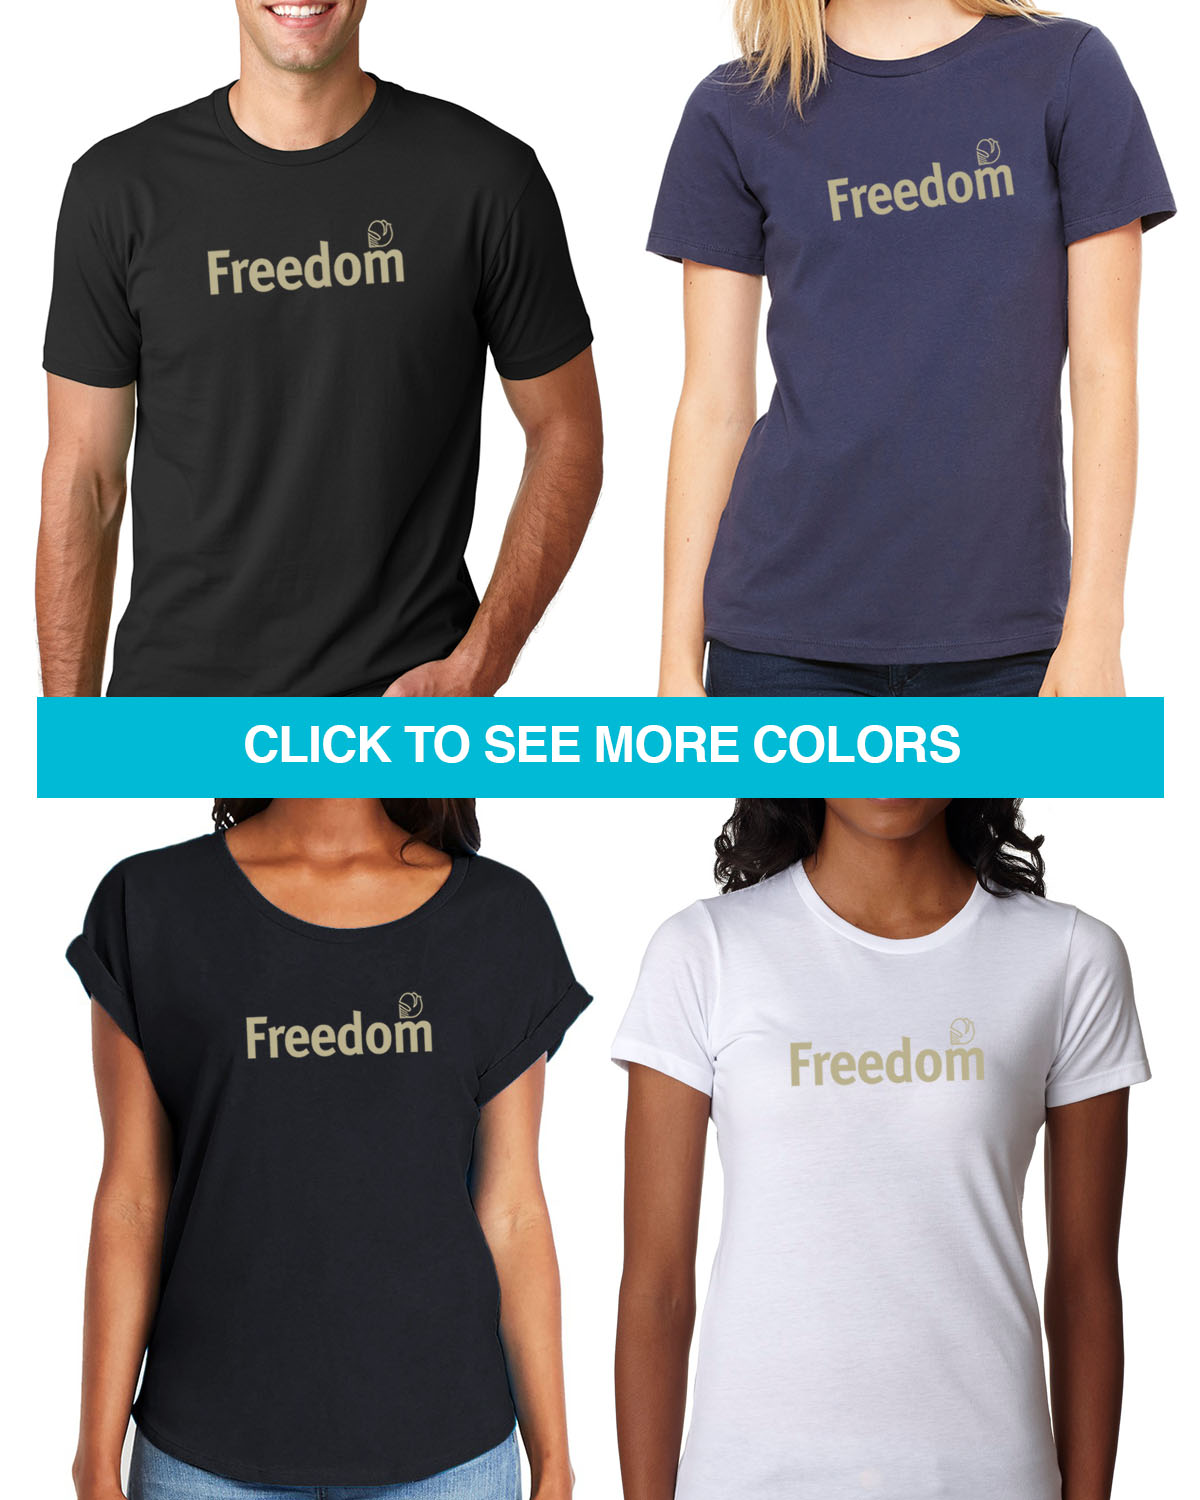 Freedom Tees for Men & Women